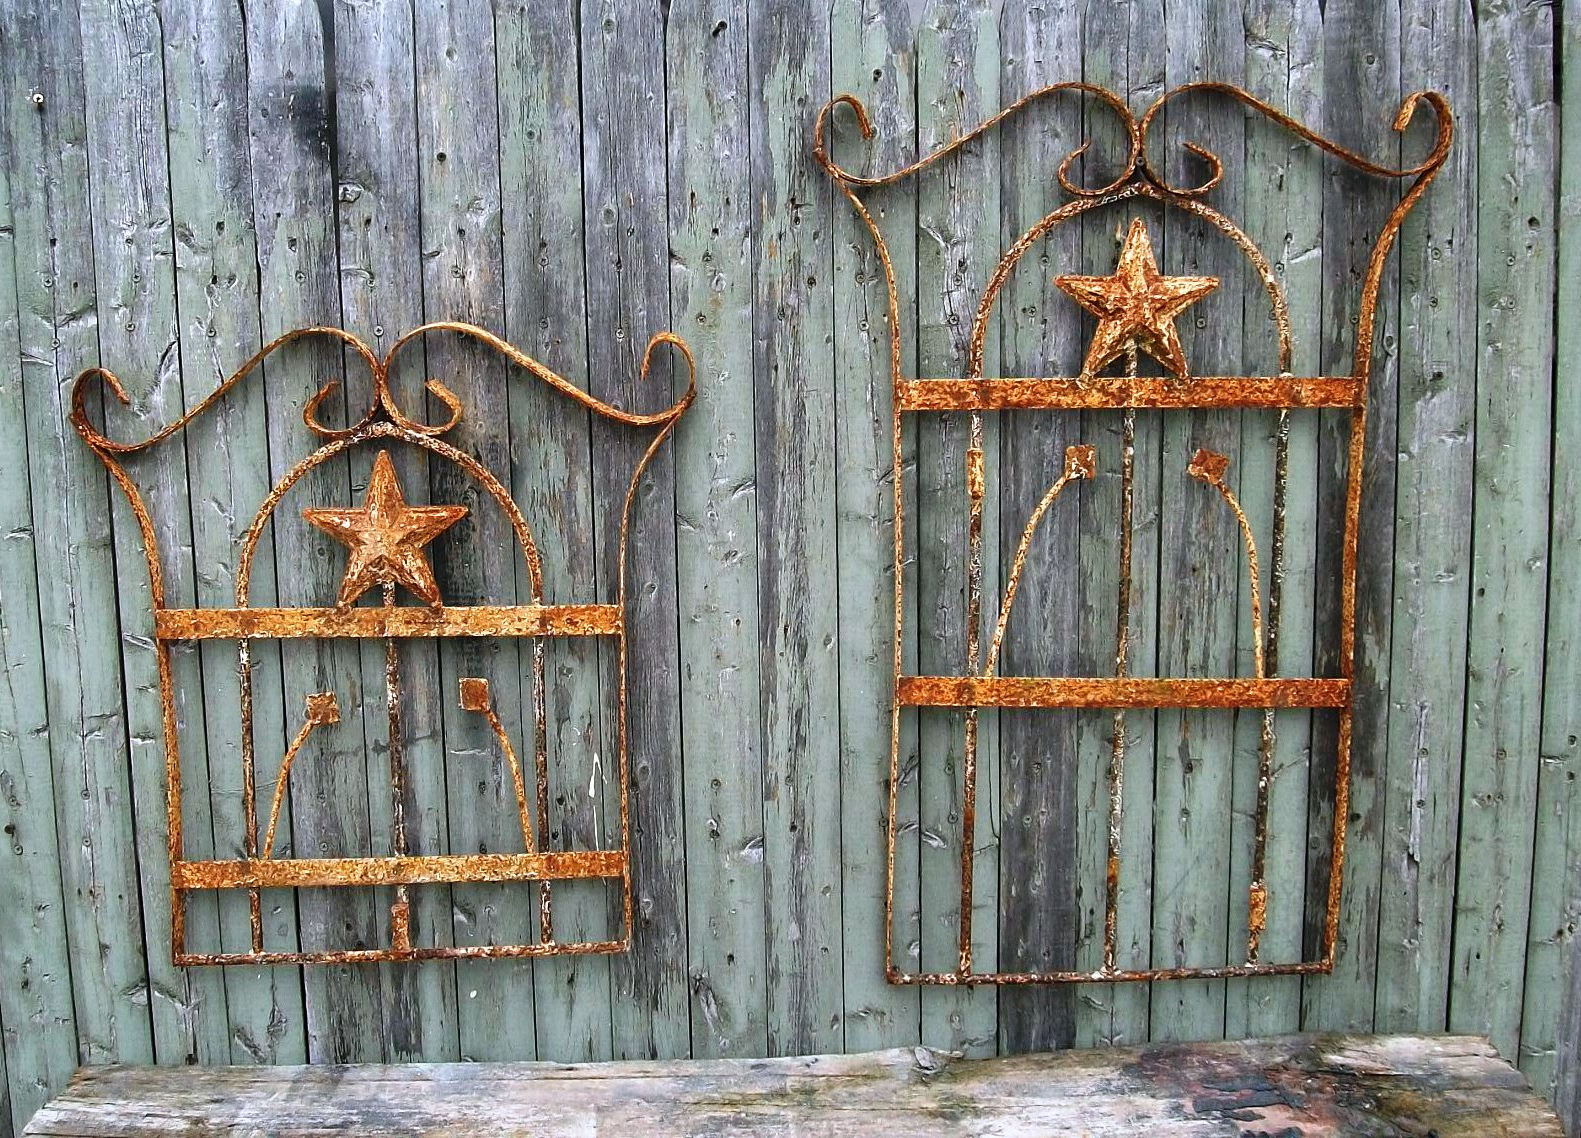 Ornamental Wood And Metal Scroll Wall Decor Pertaining To Recent Wrought Iron Outdoor Wall Decor Style (Gallery 16 of 20)